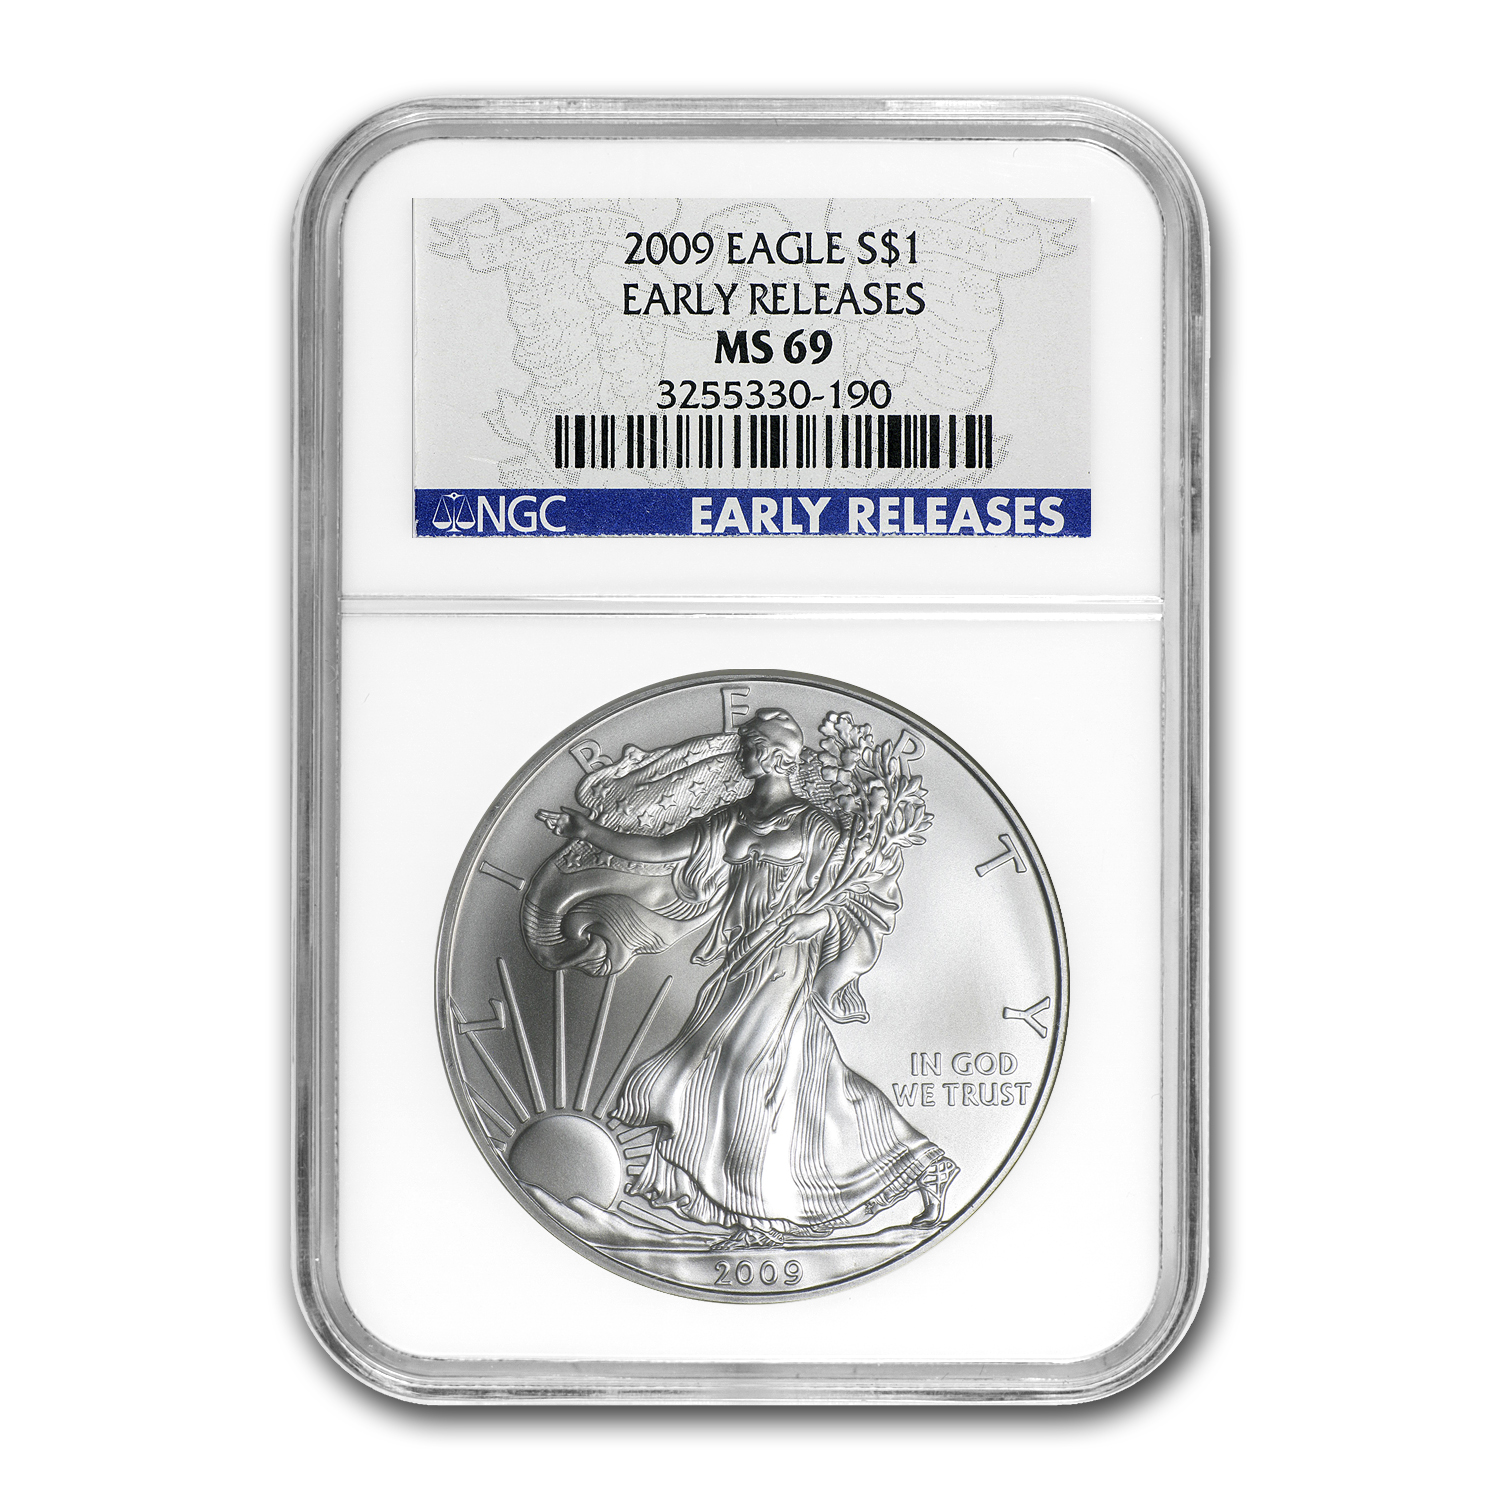 2009 Silver American Eagle - MS-69 NGC - Blue Label/Early Release